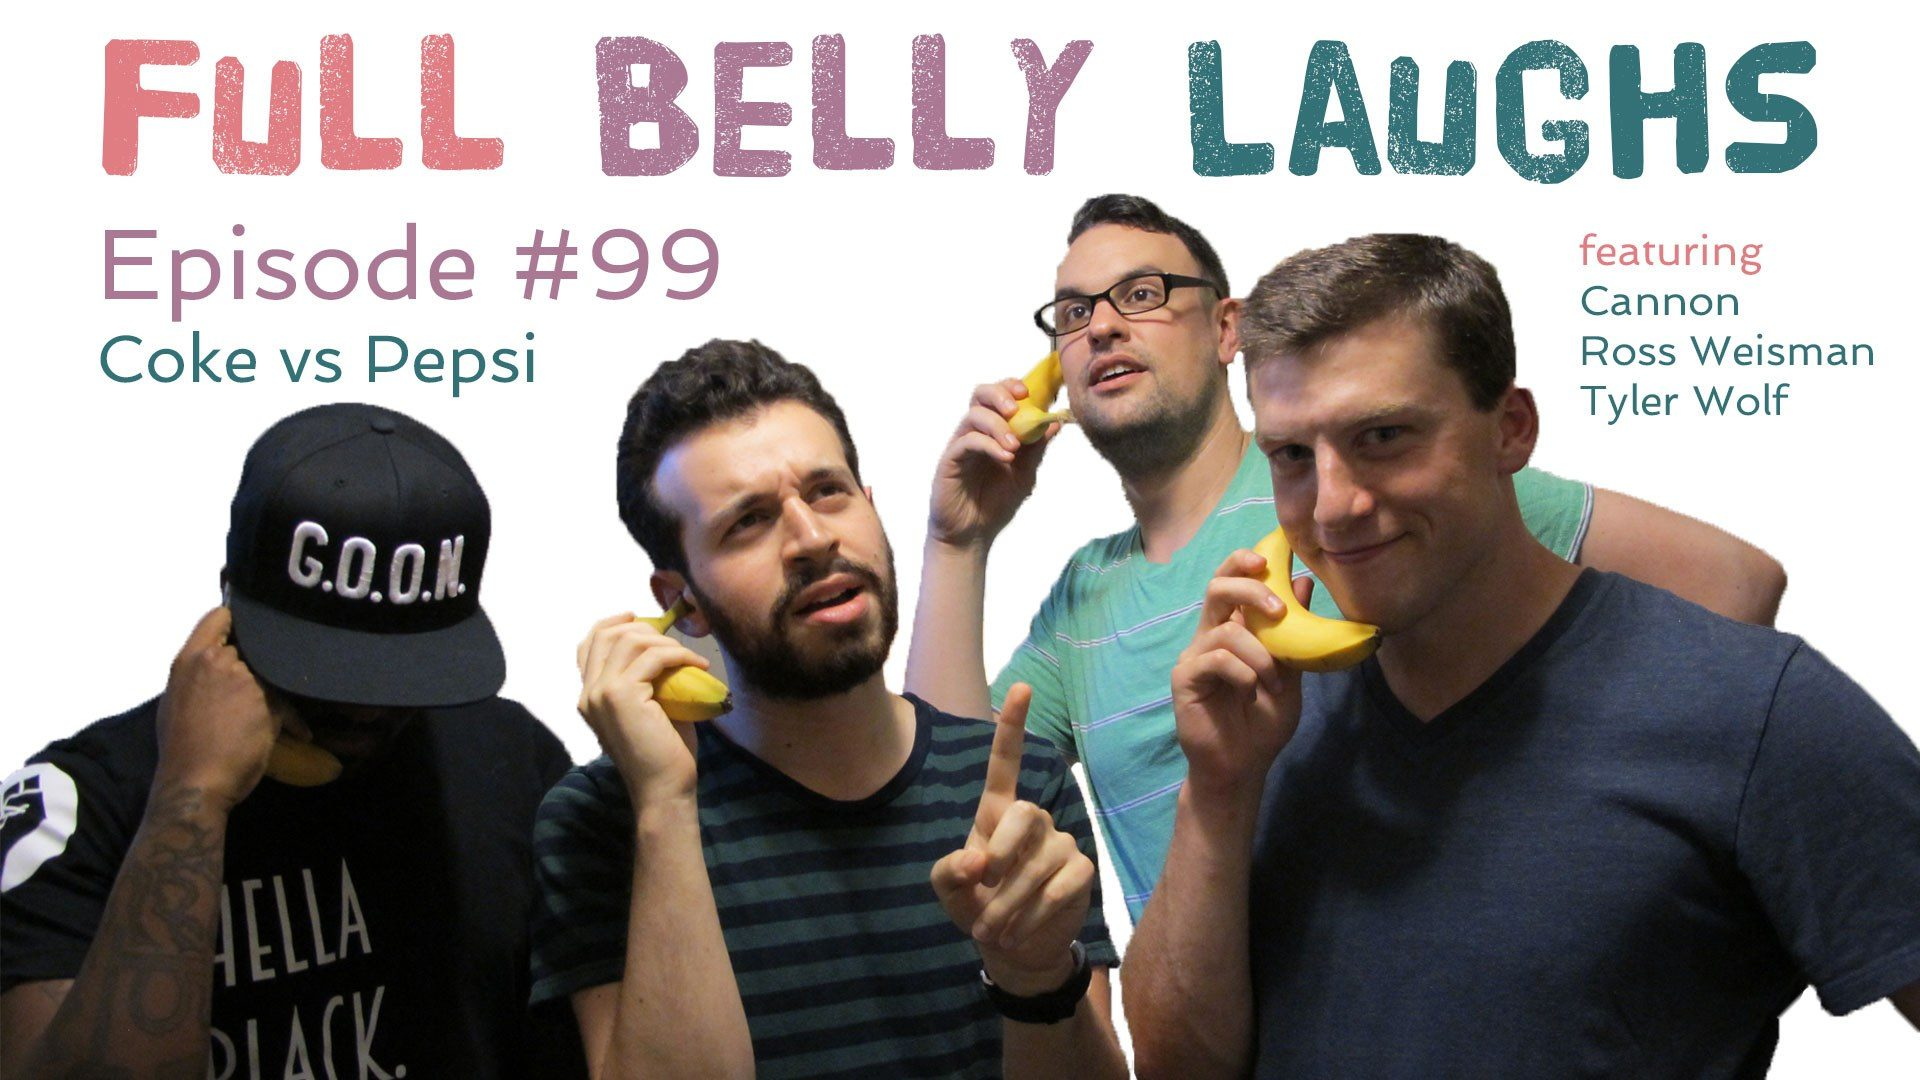 full belly laughs podcast episode 99 coke vs pepsi audio artwork